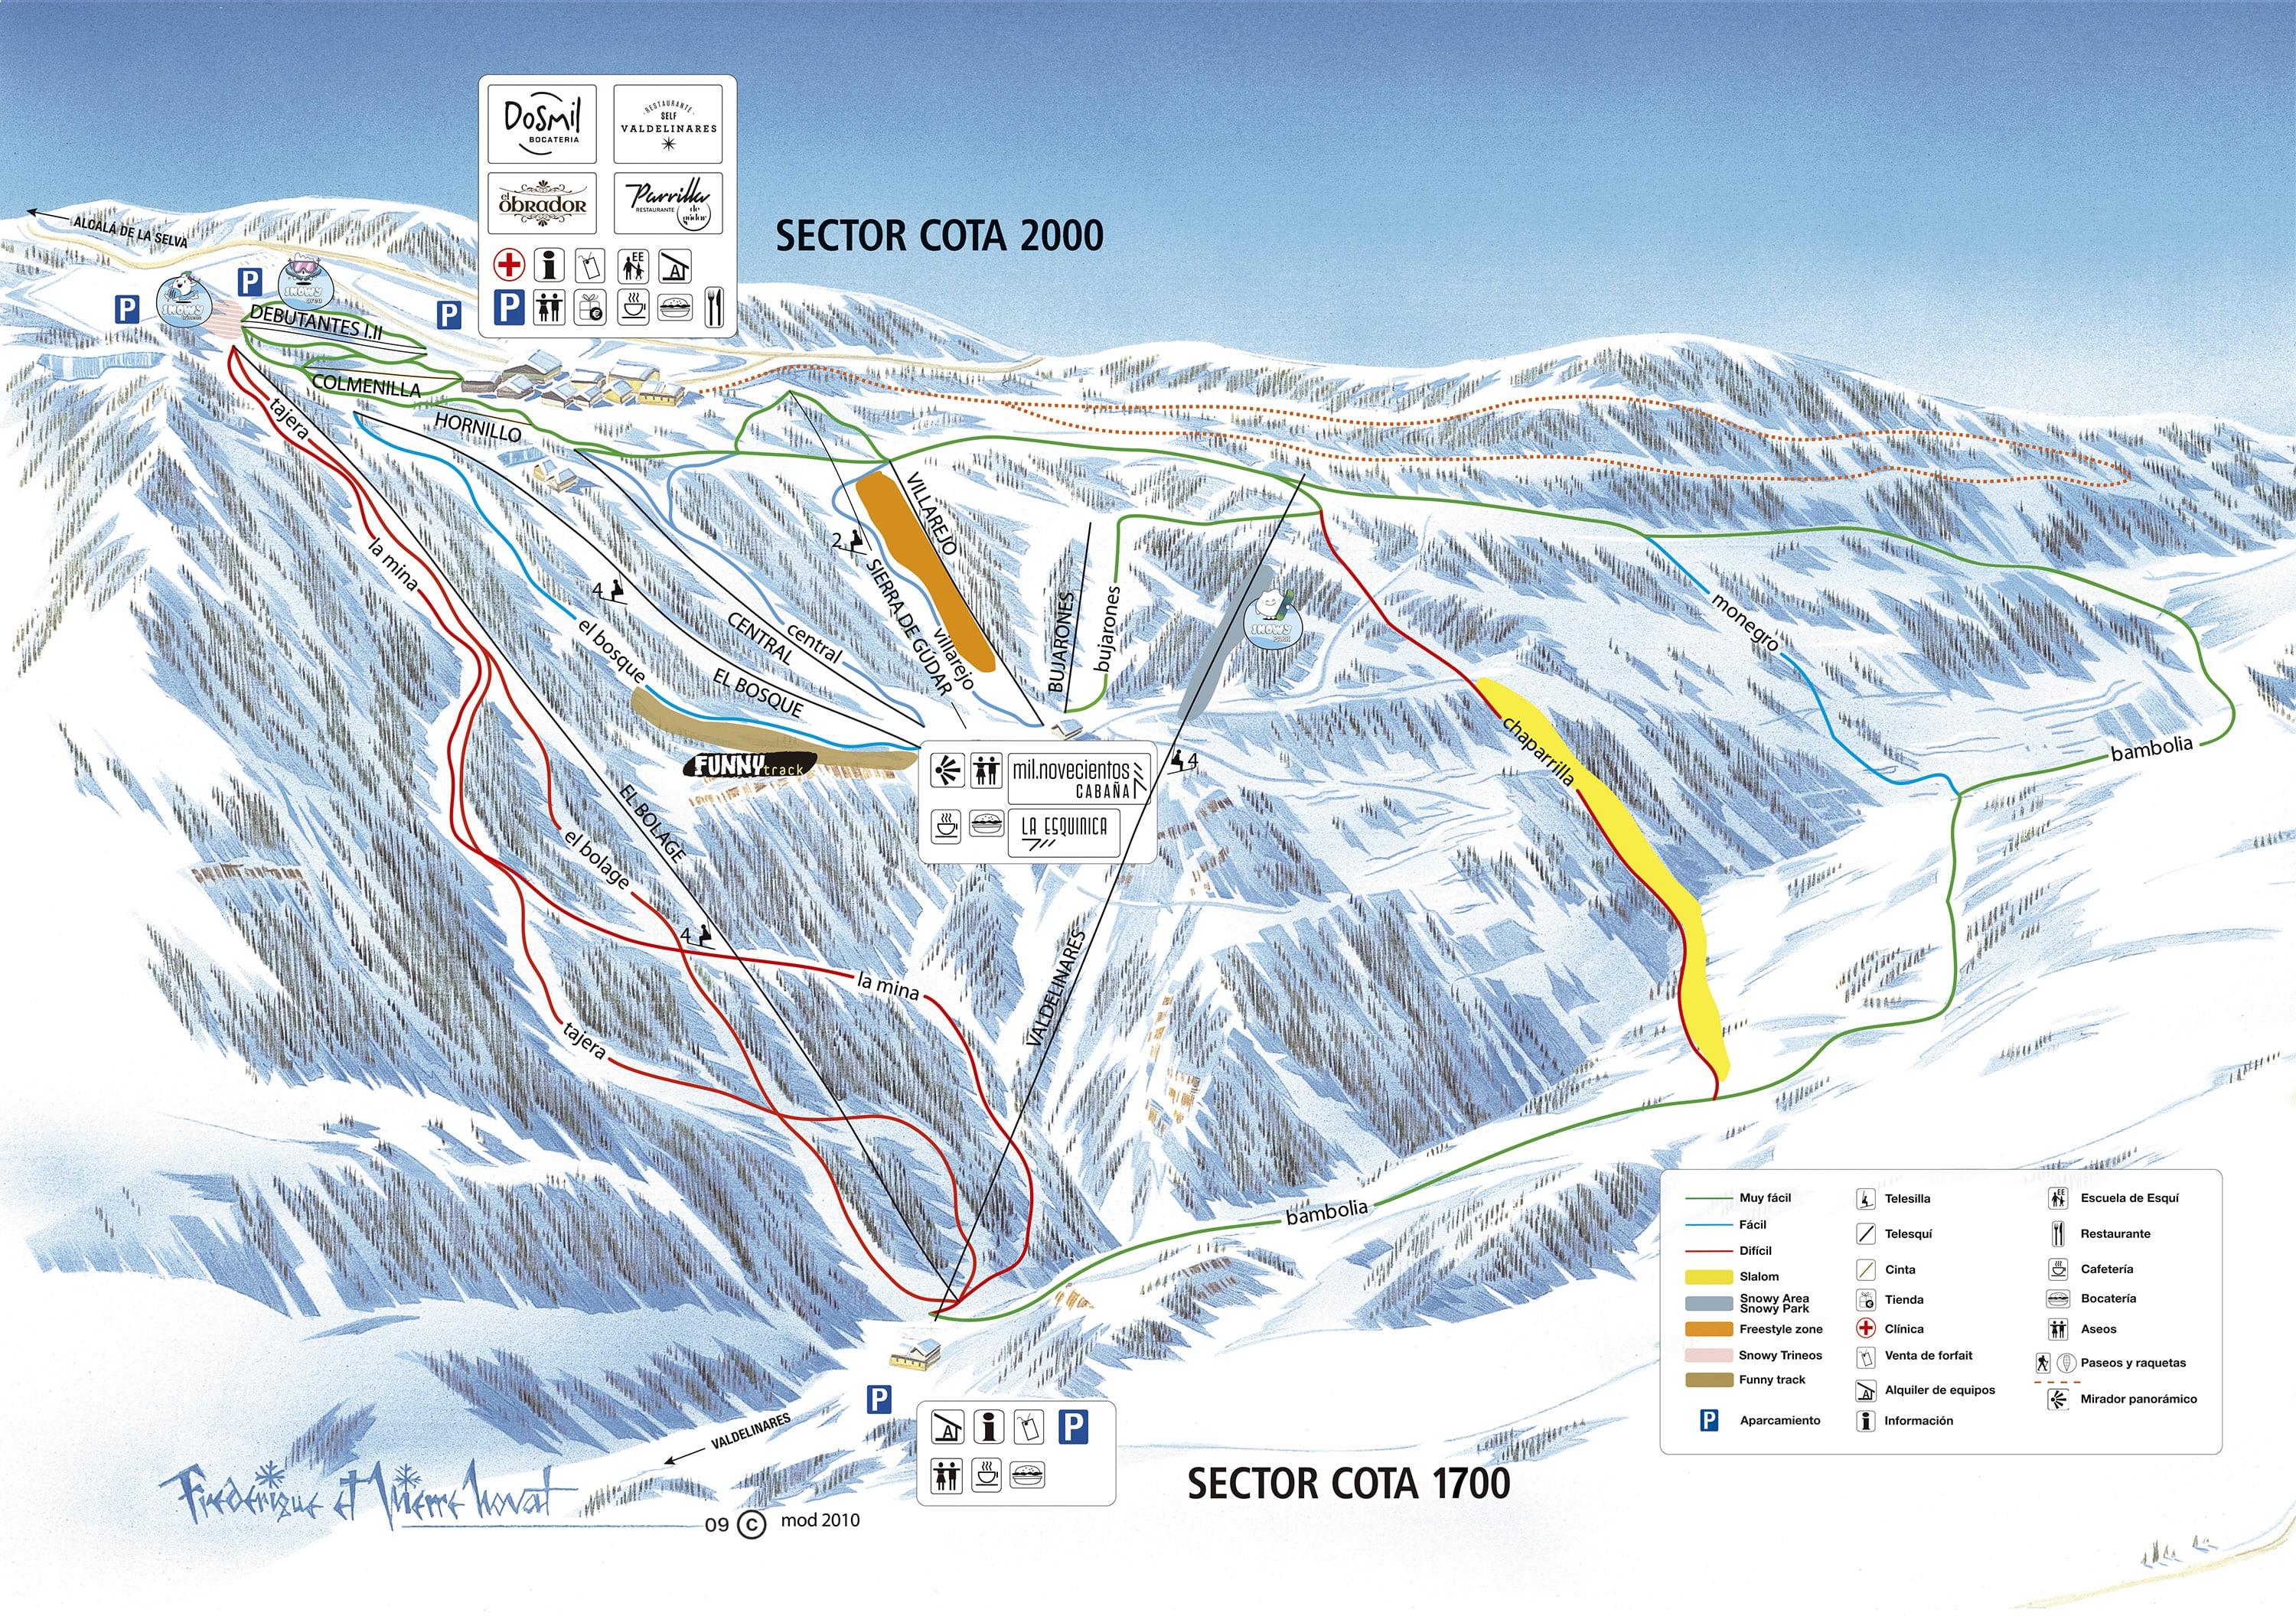 Valdelinares Piste / Trail Map